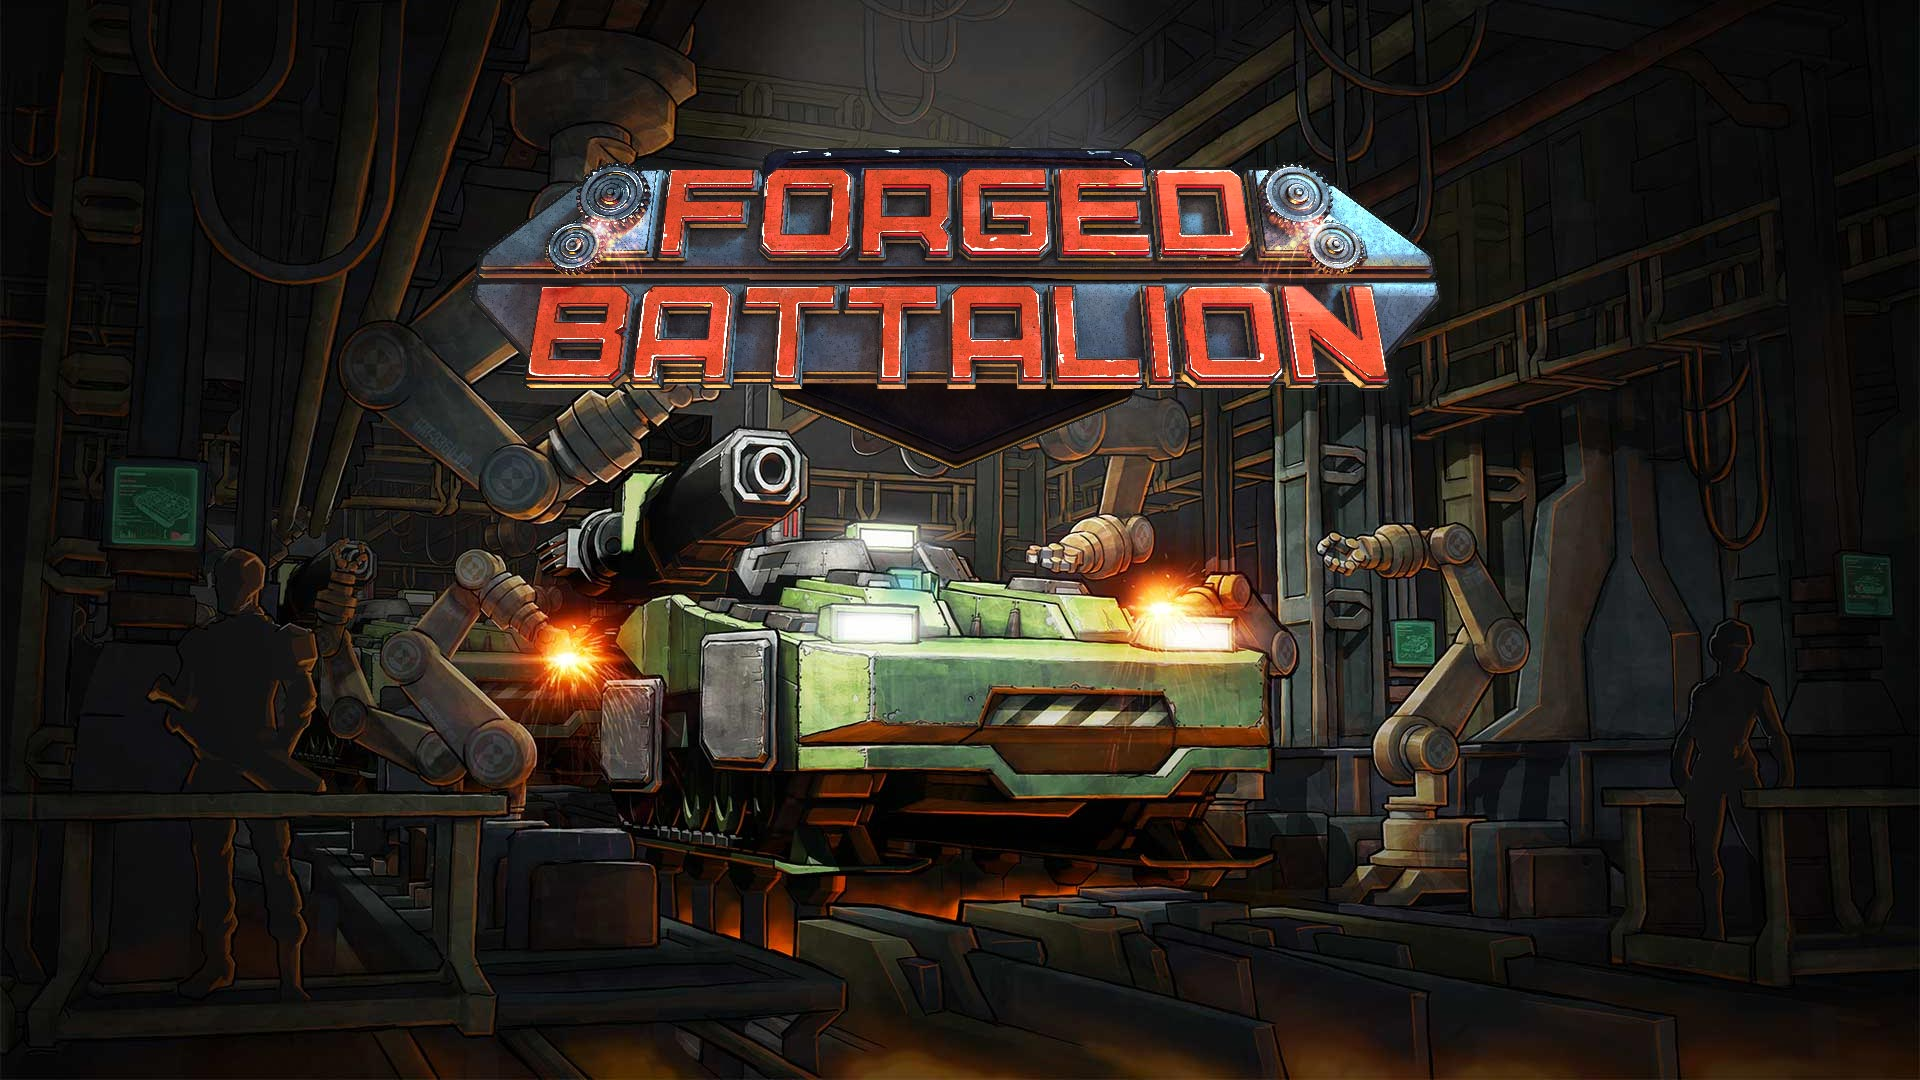 Forged Battalion Launches on Steam Early Access January 16th 2018!